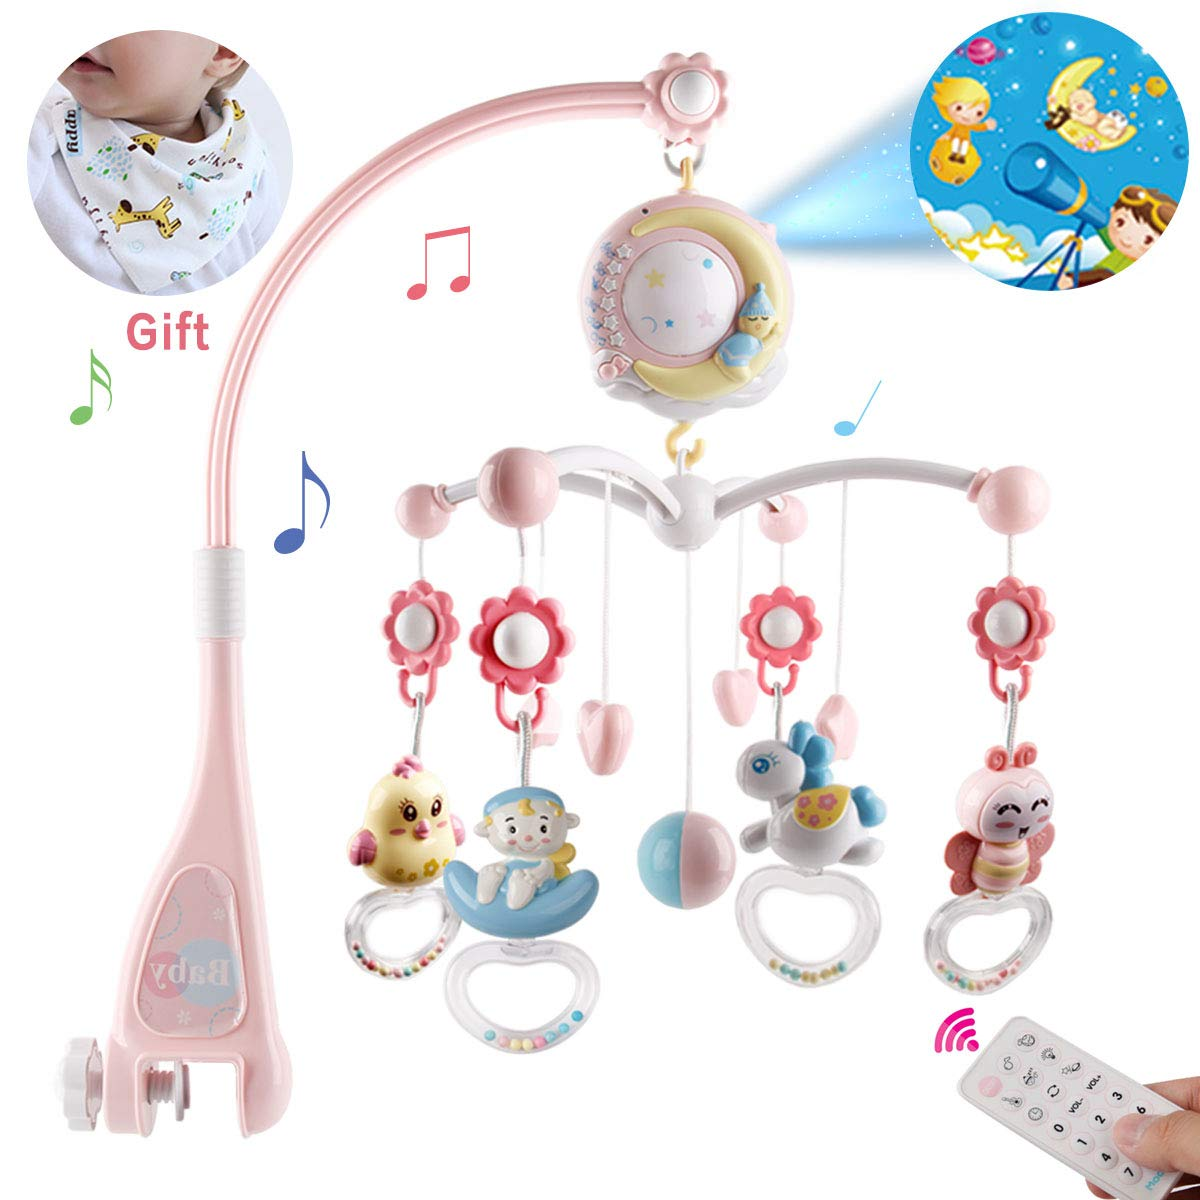 BOBXIN Baby Musical Crib Mobile with Projector and Night Light,150 Music,Timing Function,Take Along Mobile Music Box and Rattle,Gift for Toddles(with Bibs)